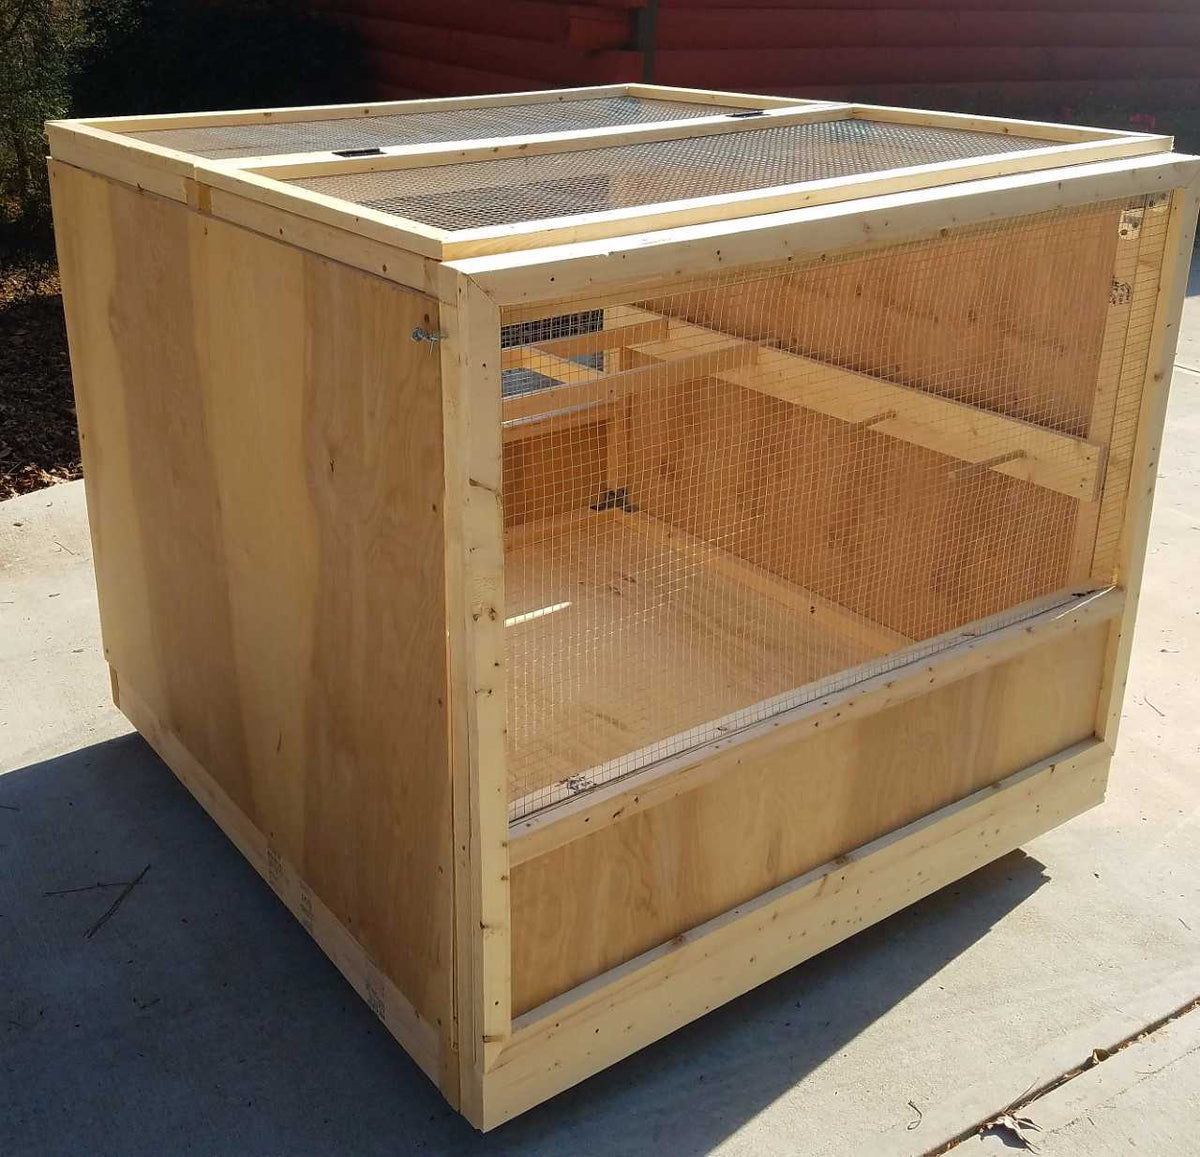 Poultry Playpen - A brooder box to raise chicks or house a sick / injured chicken